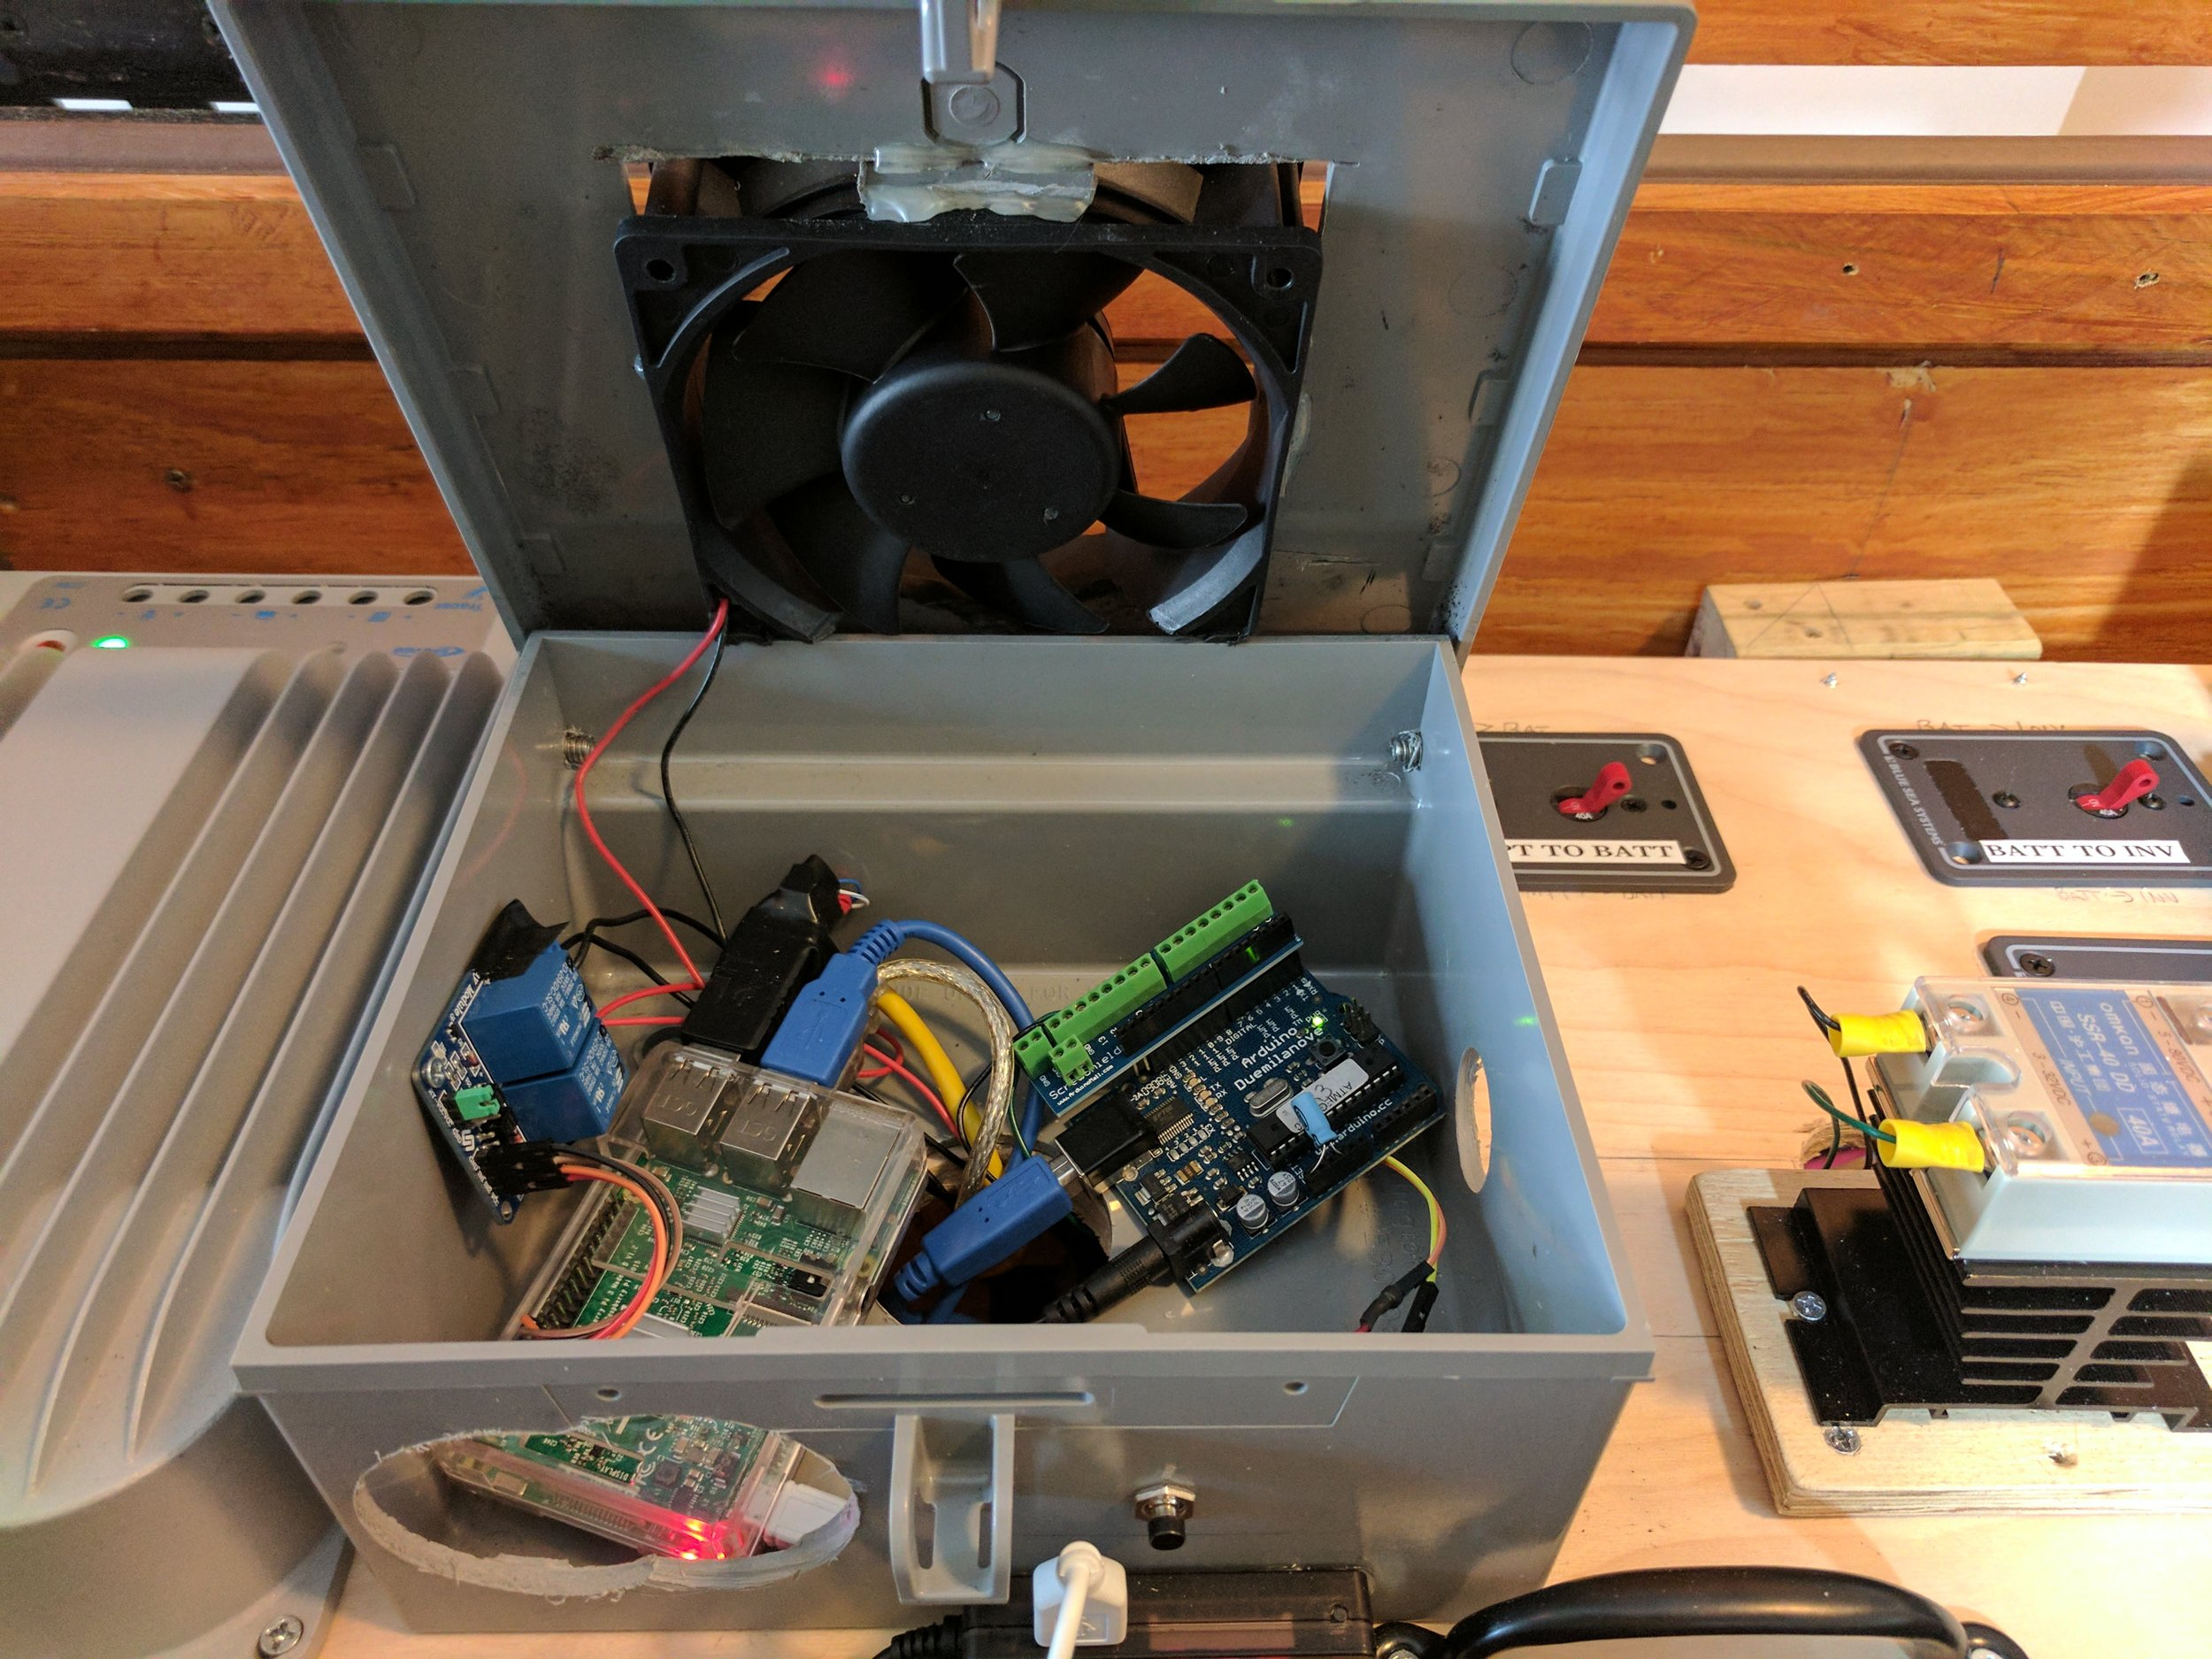 Where the Raspberry Pi and other components reside.